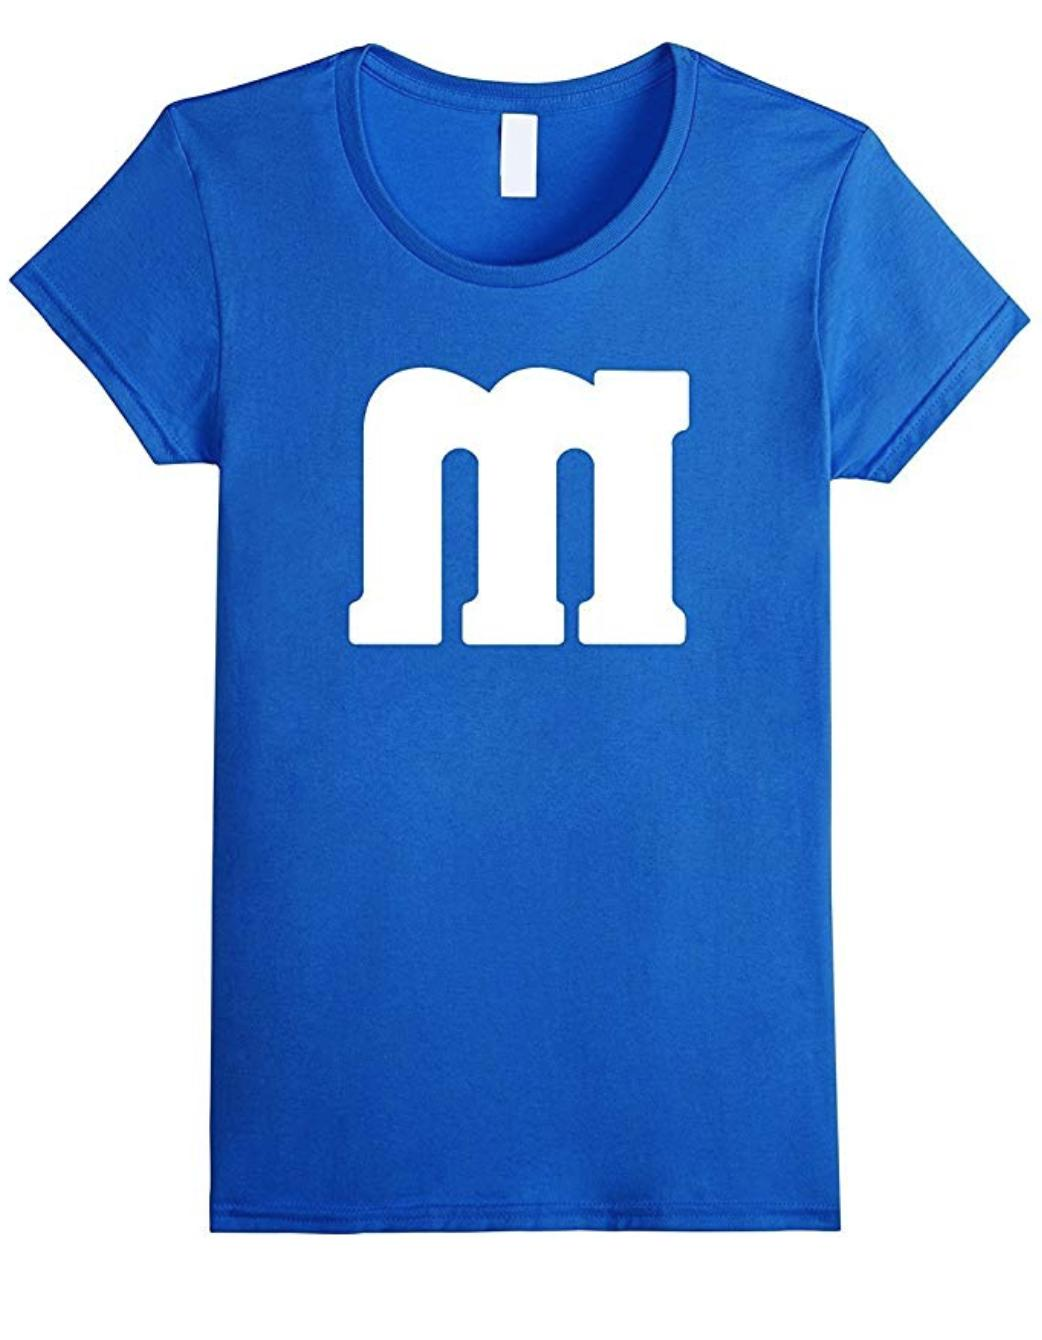 M Youth T-Shirt Tee